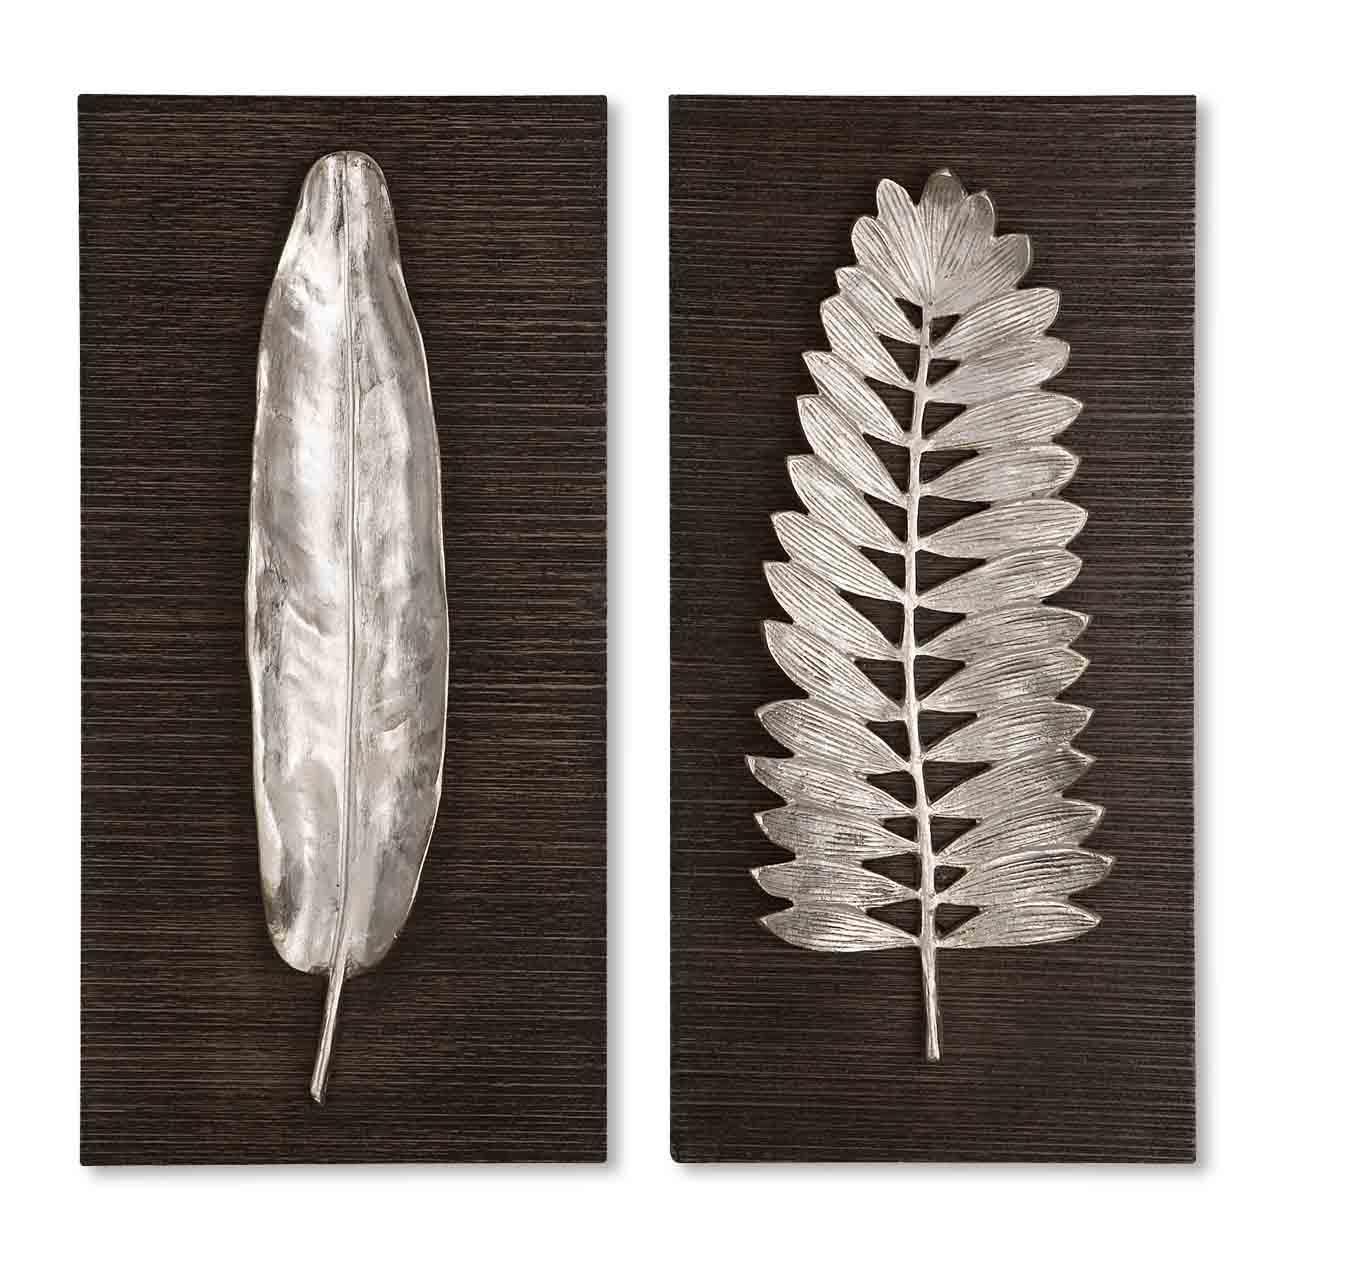 Uttermost Alternative Wall Decor Silver Leaves Set of 2 - Item Number: 04001